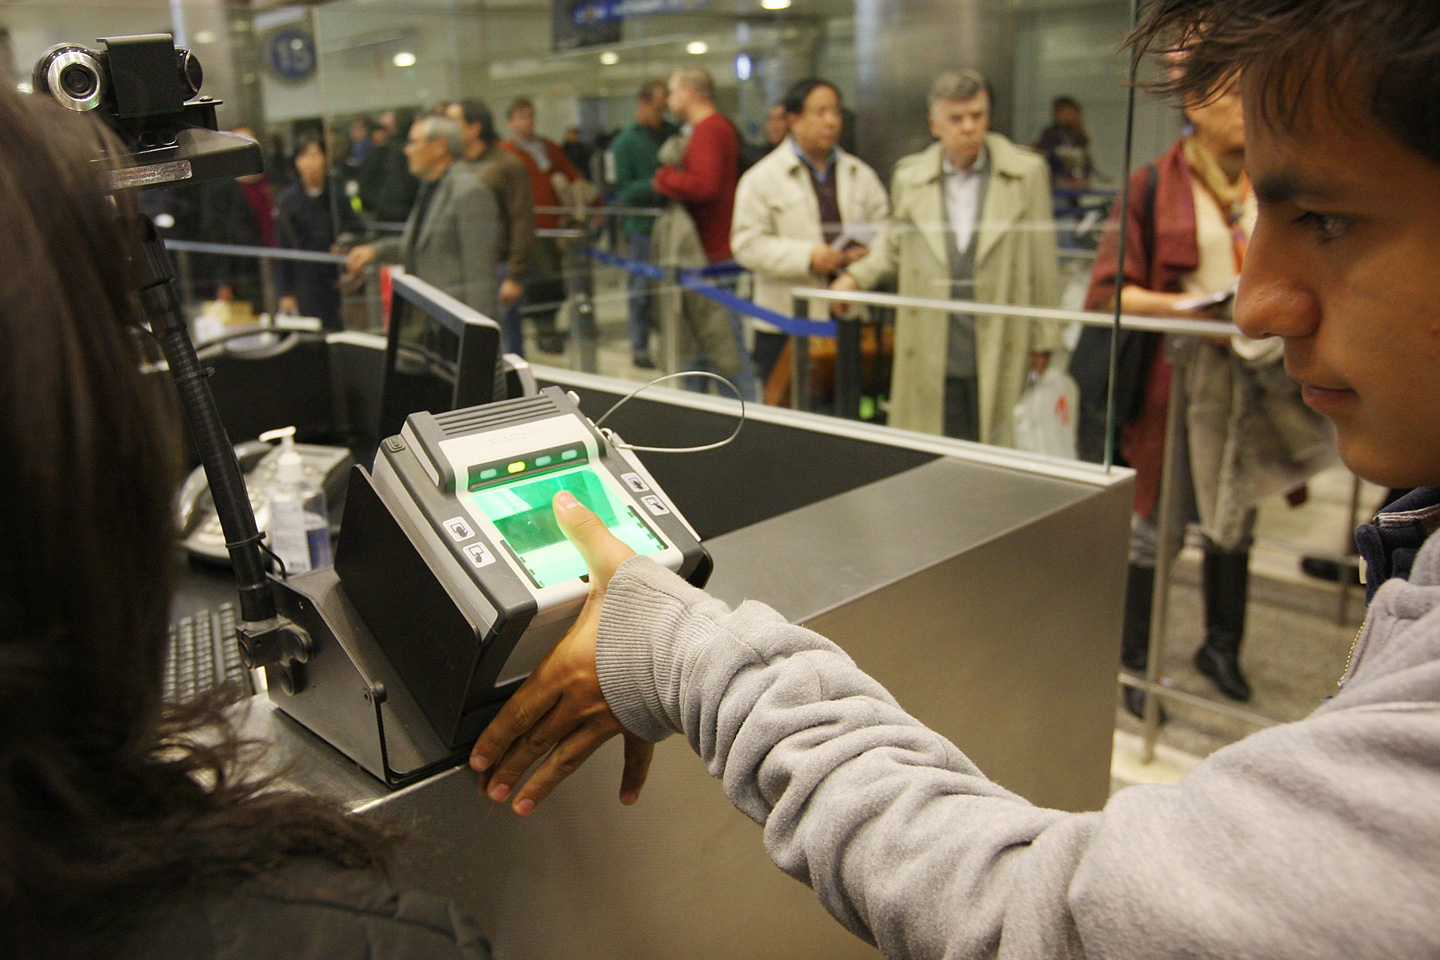 LOS ANGELES, CA - DECEMBER 10:  International air travelers are electronically fingerprinted as they are processed by US Customs and Border Protection agents upon arrival to Bradley International Terminal at Los Angeles International Airport (LAX), on December 10, 2009 in Los Angeles, California. December is the busiest time of the year for international travel and the US CBS is trying to educate the public on ways to get through the customs process efficiently.  (Photo by David McNew/Getty Images)